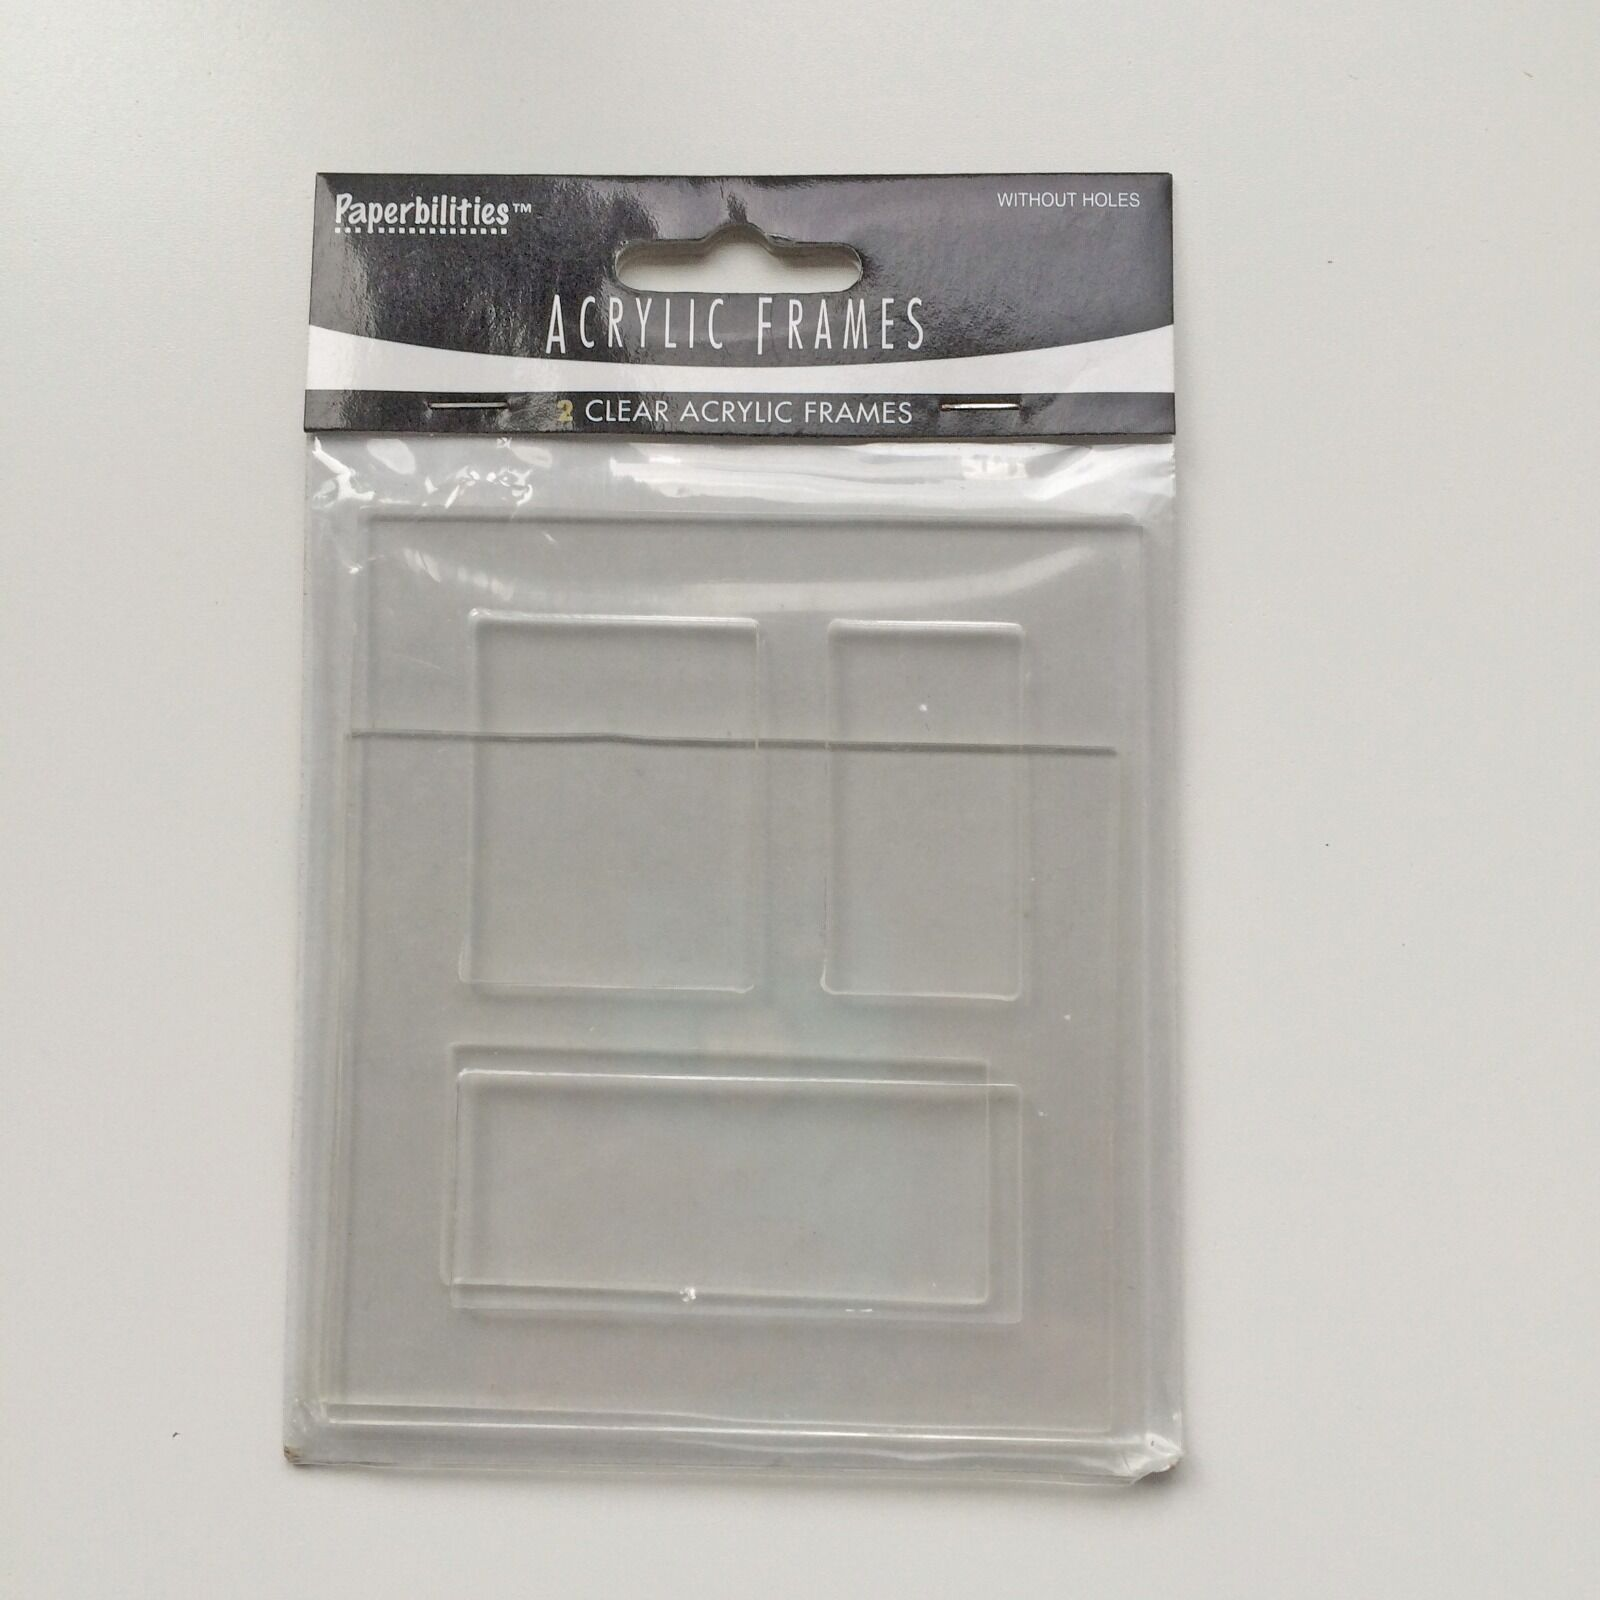 Paperbilities / Paper Bliss Large Clear Acrylic Frames Set of 2 Pcs ...